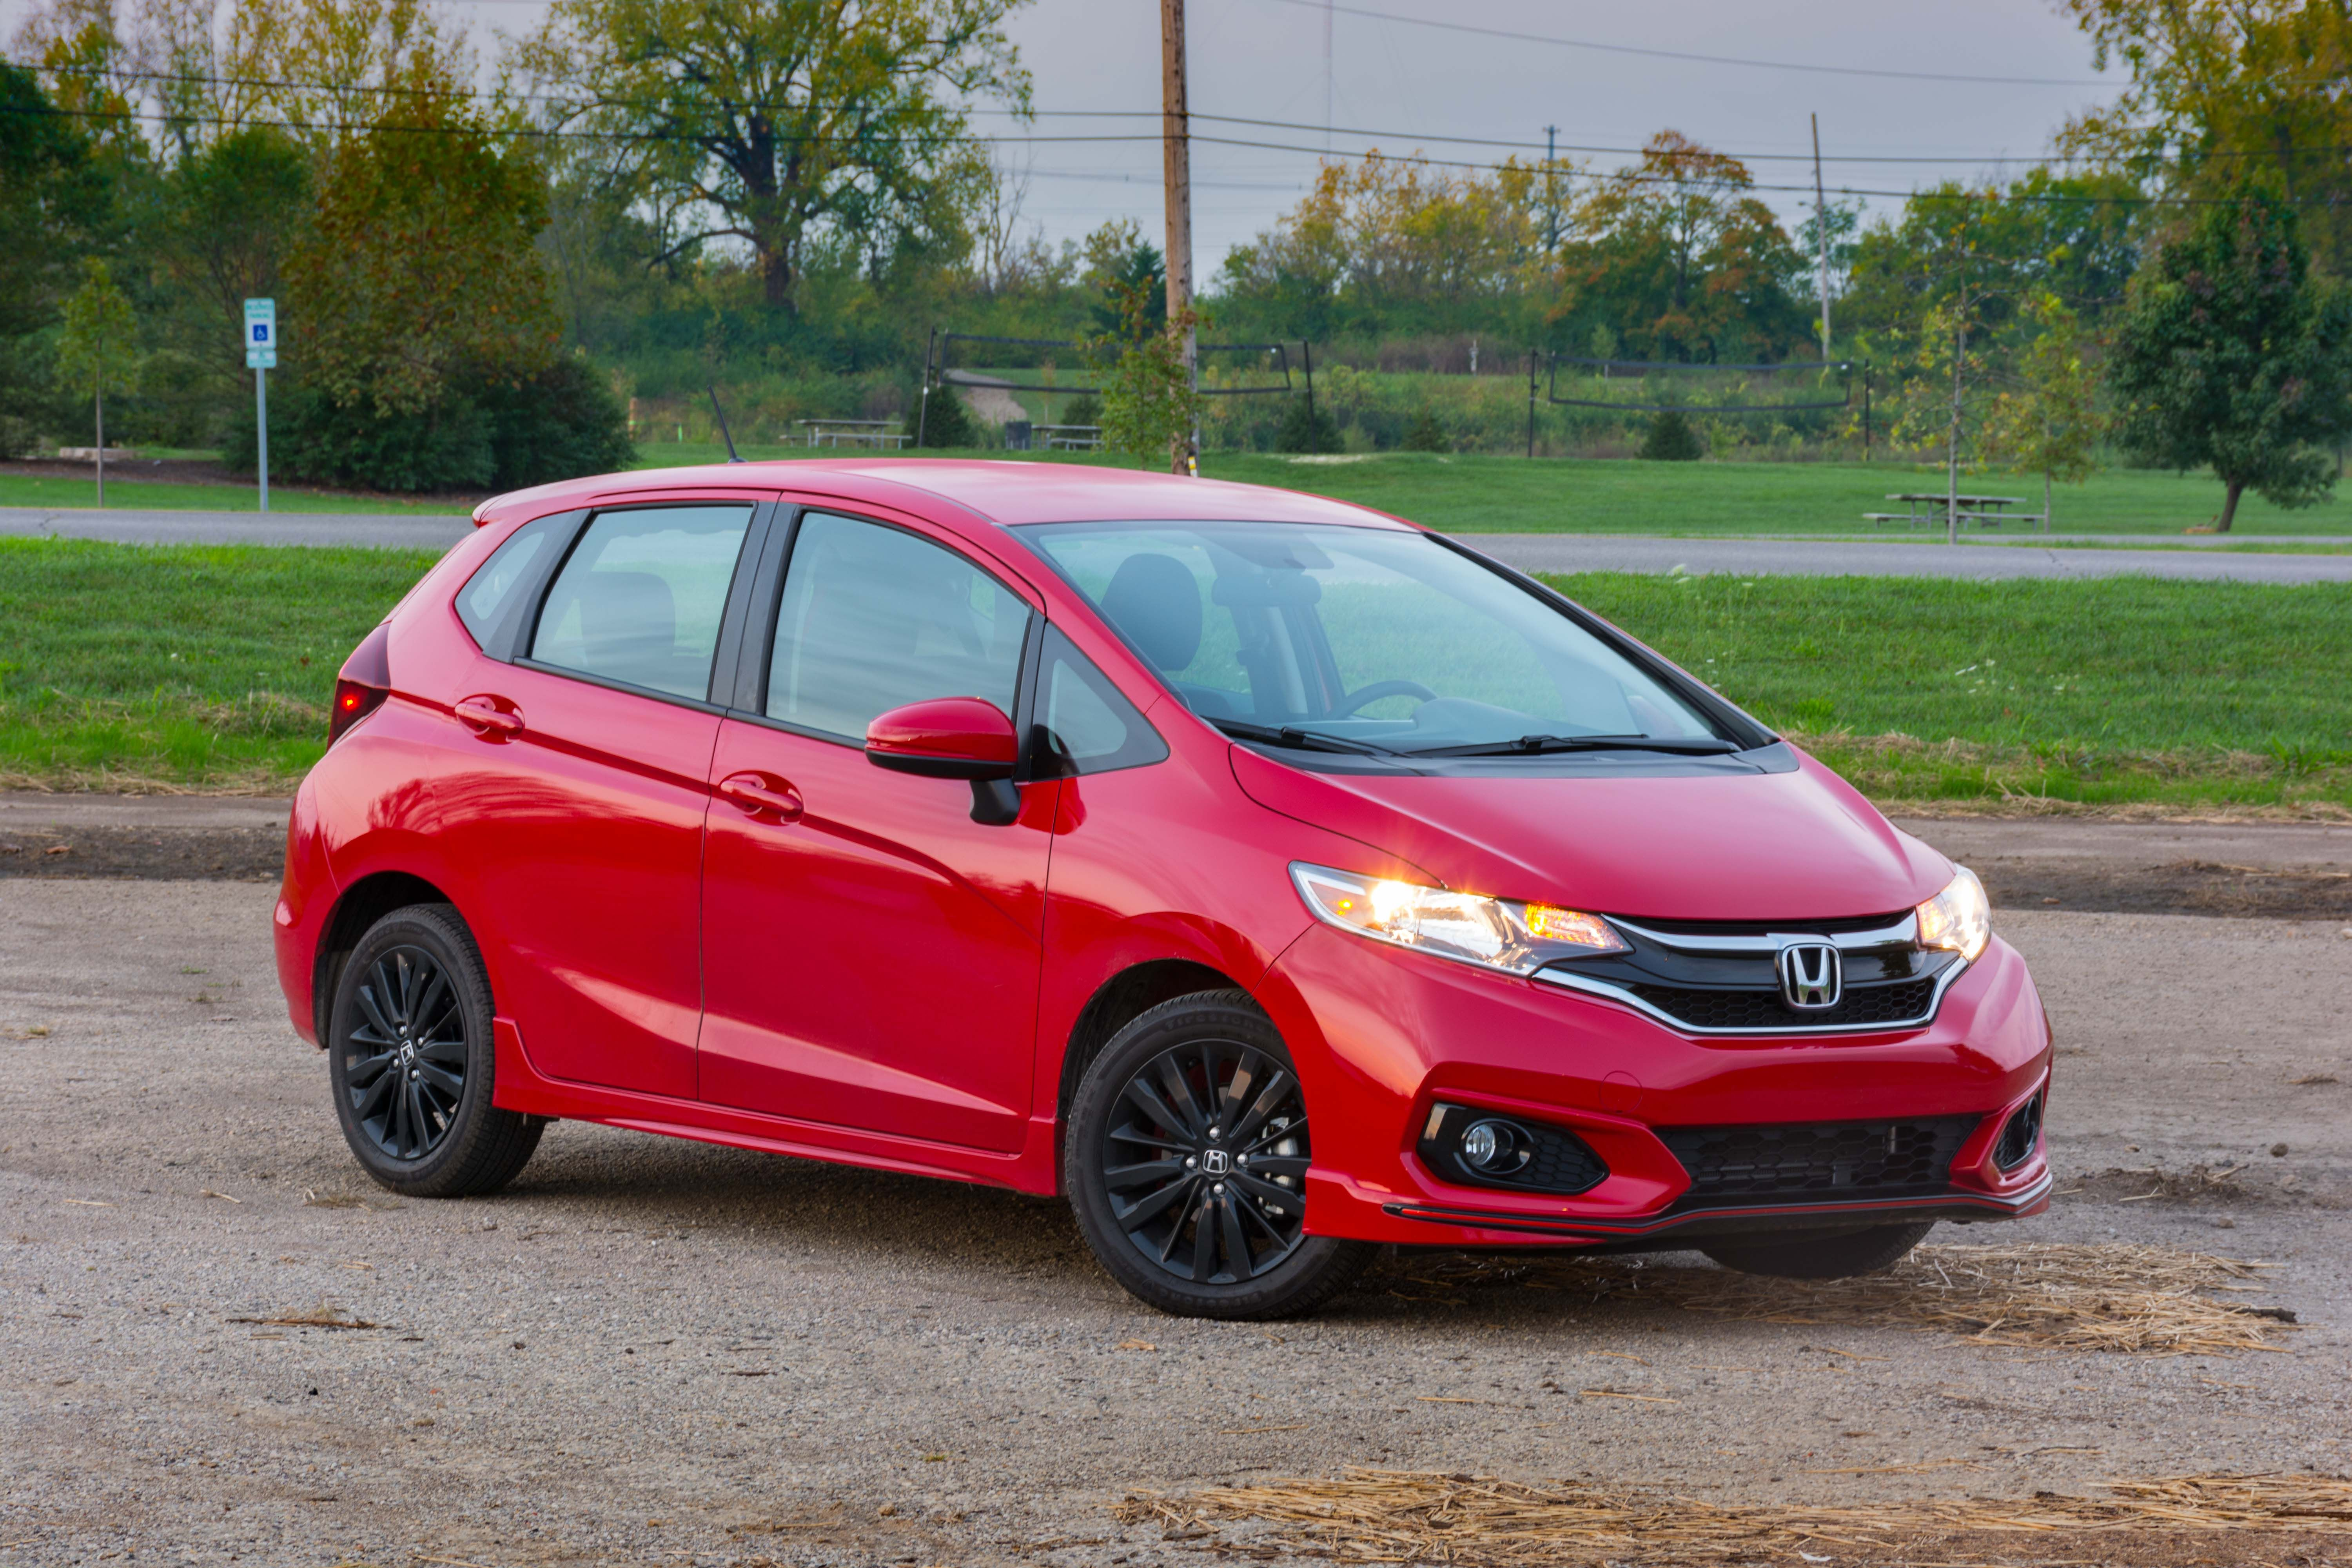 2018 Honda Fit Sport Review – Manuals, Saved - The Truth About Cars ...